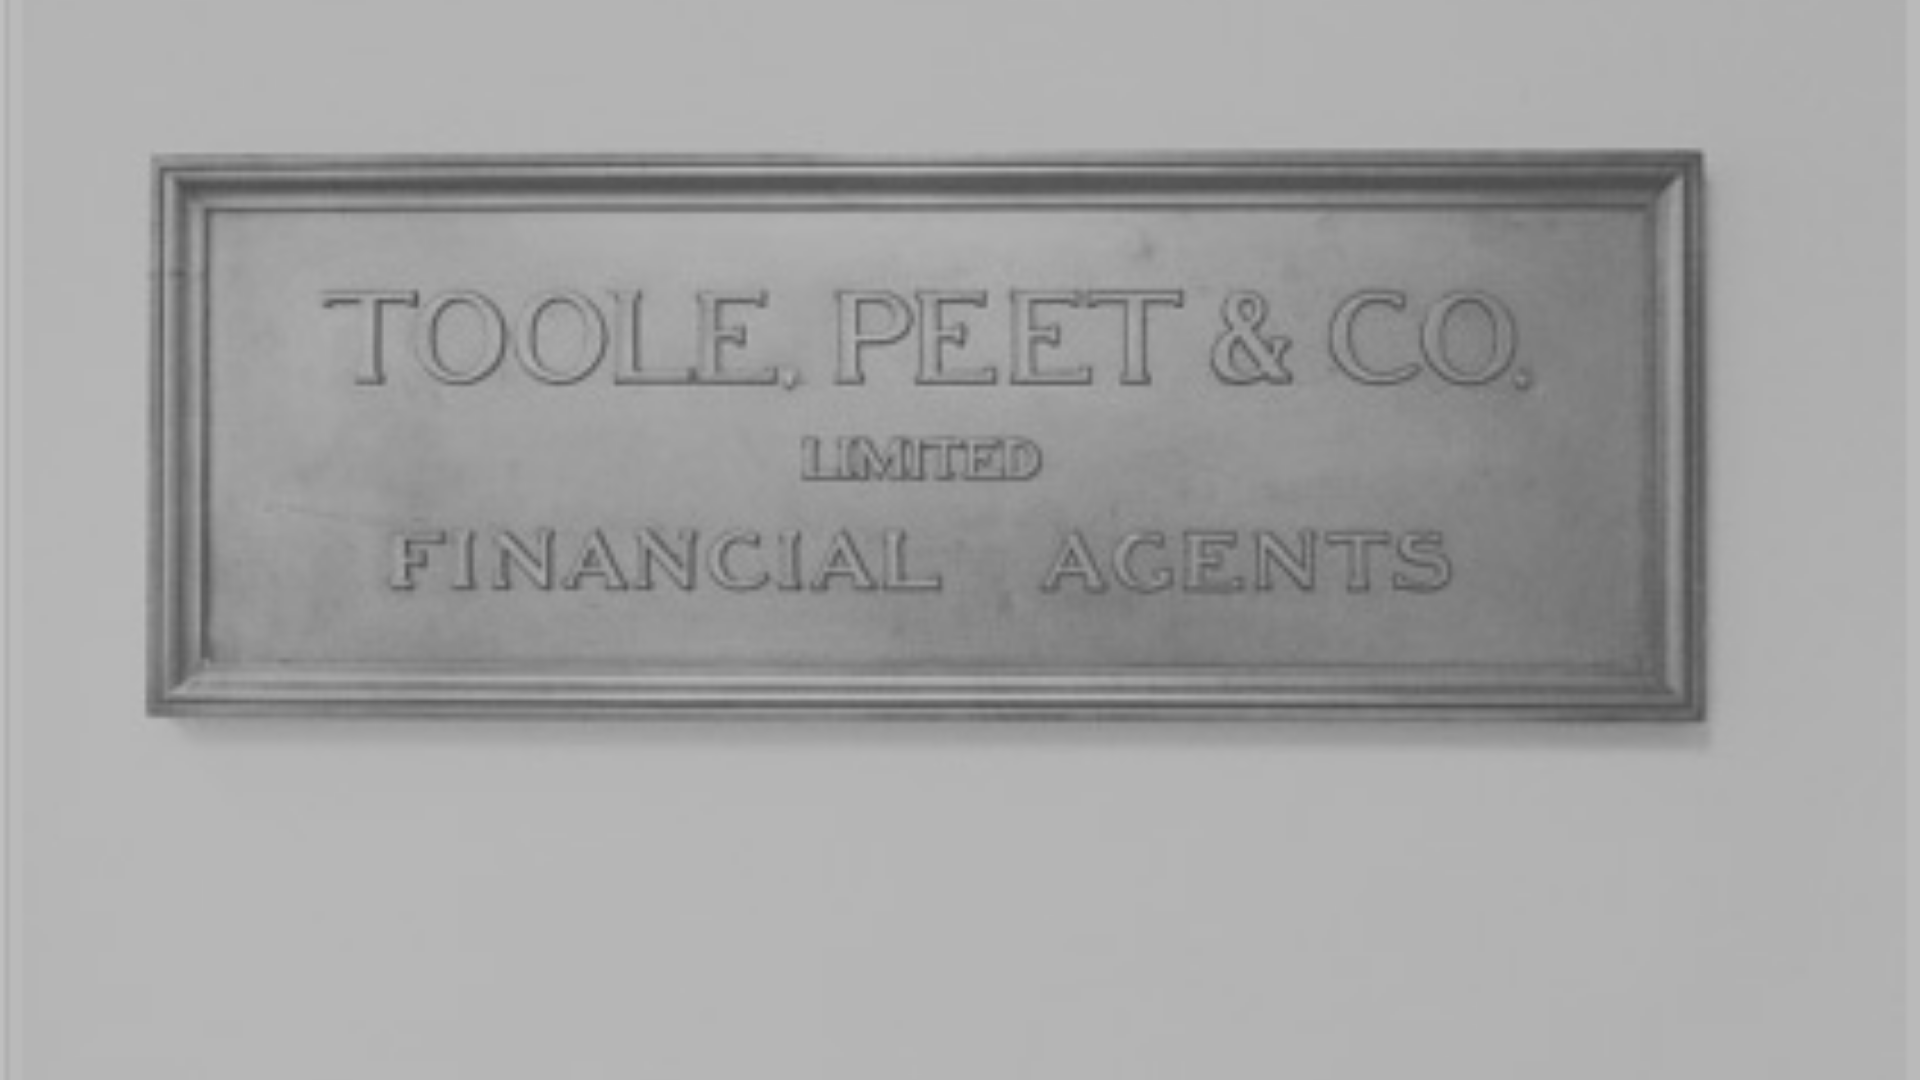 Old Toole Peet Sign Image